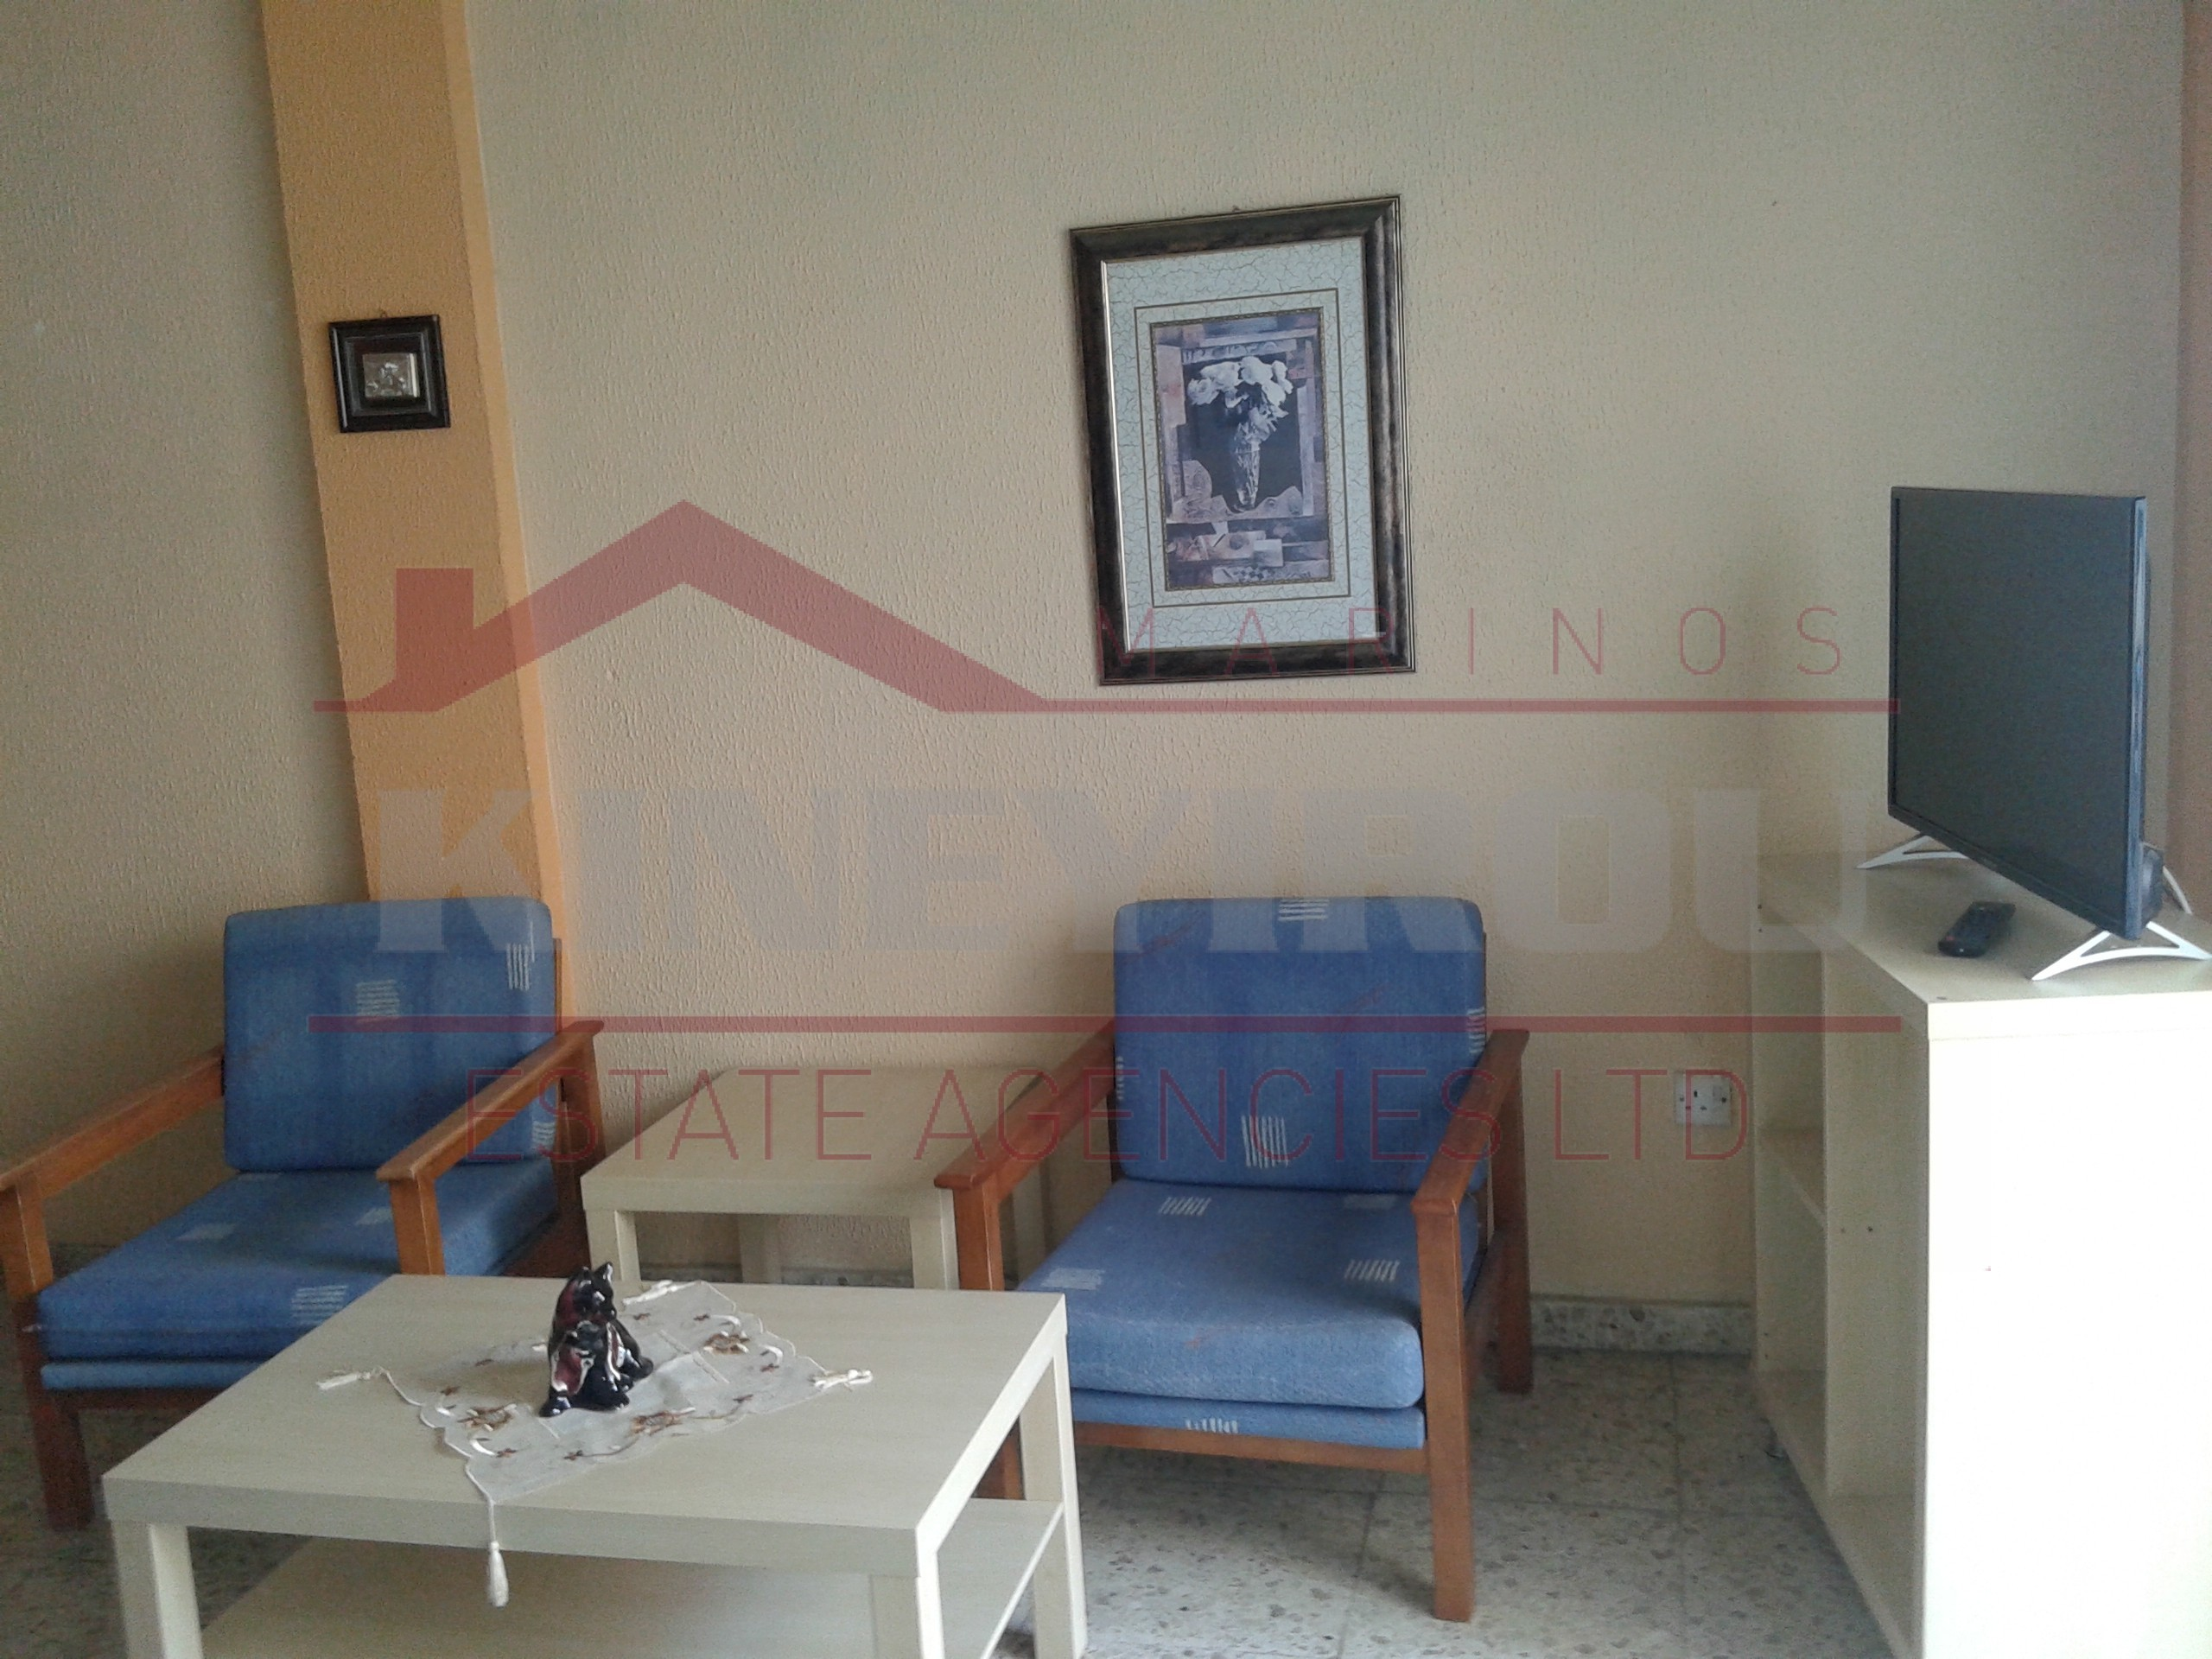 1 bedroom apartment for rent in makenzy larnaca cyprus for 1 bedroom apartment for rent